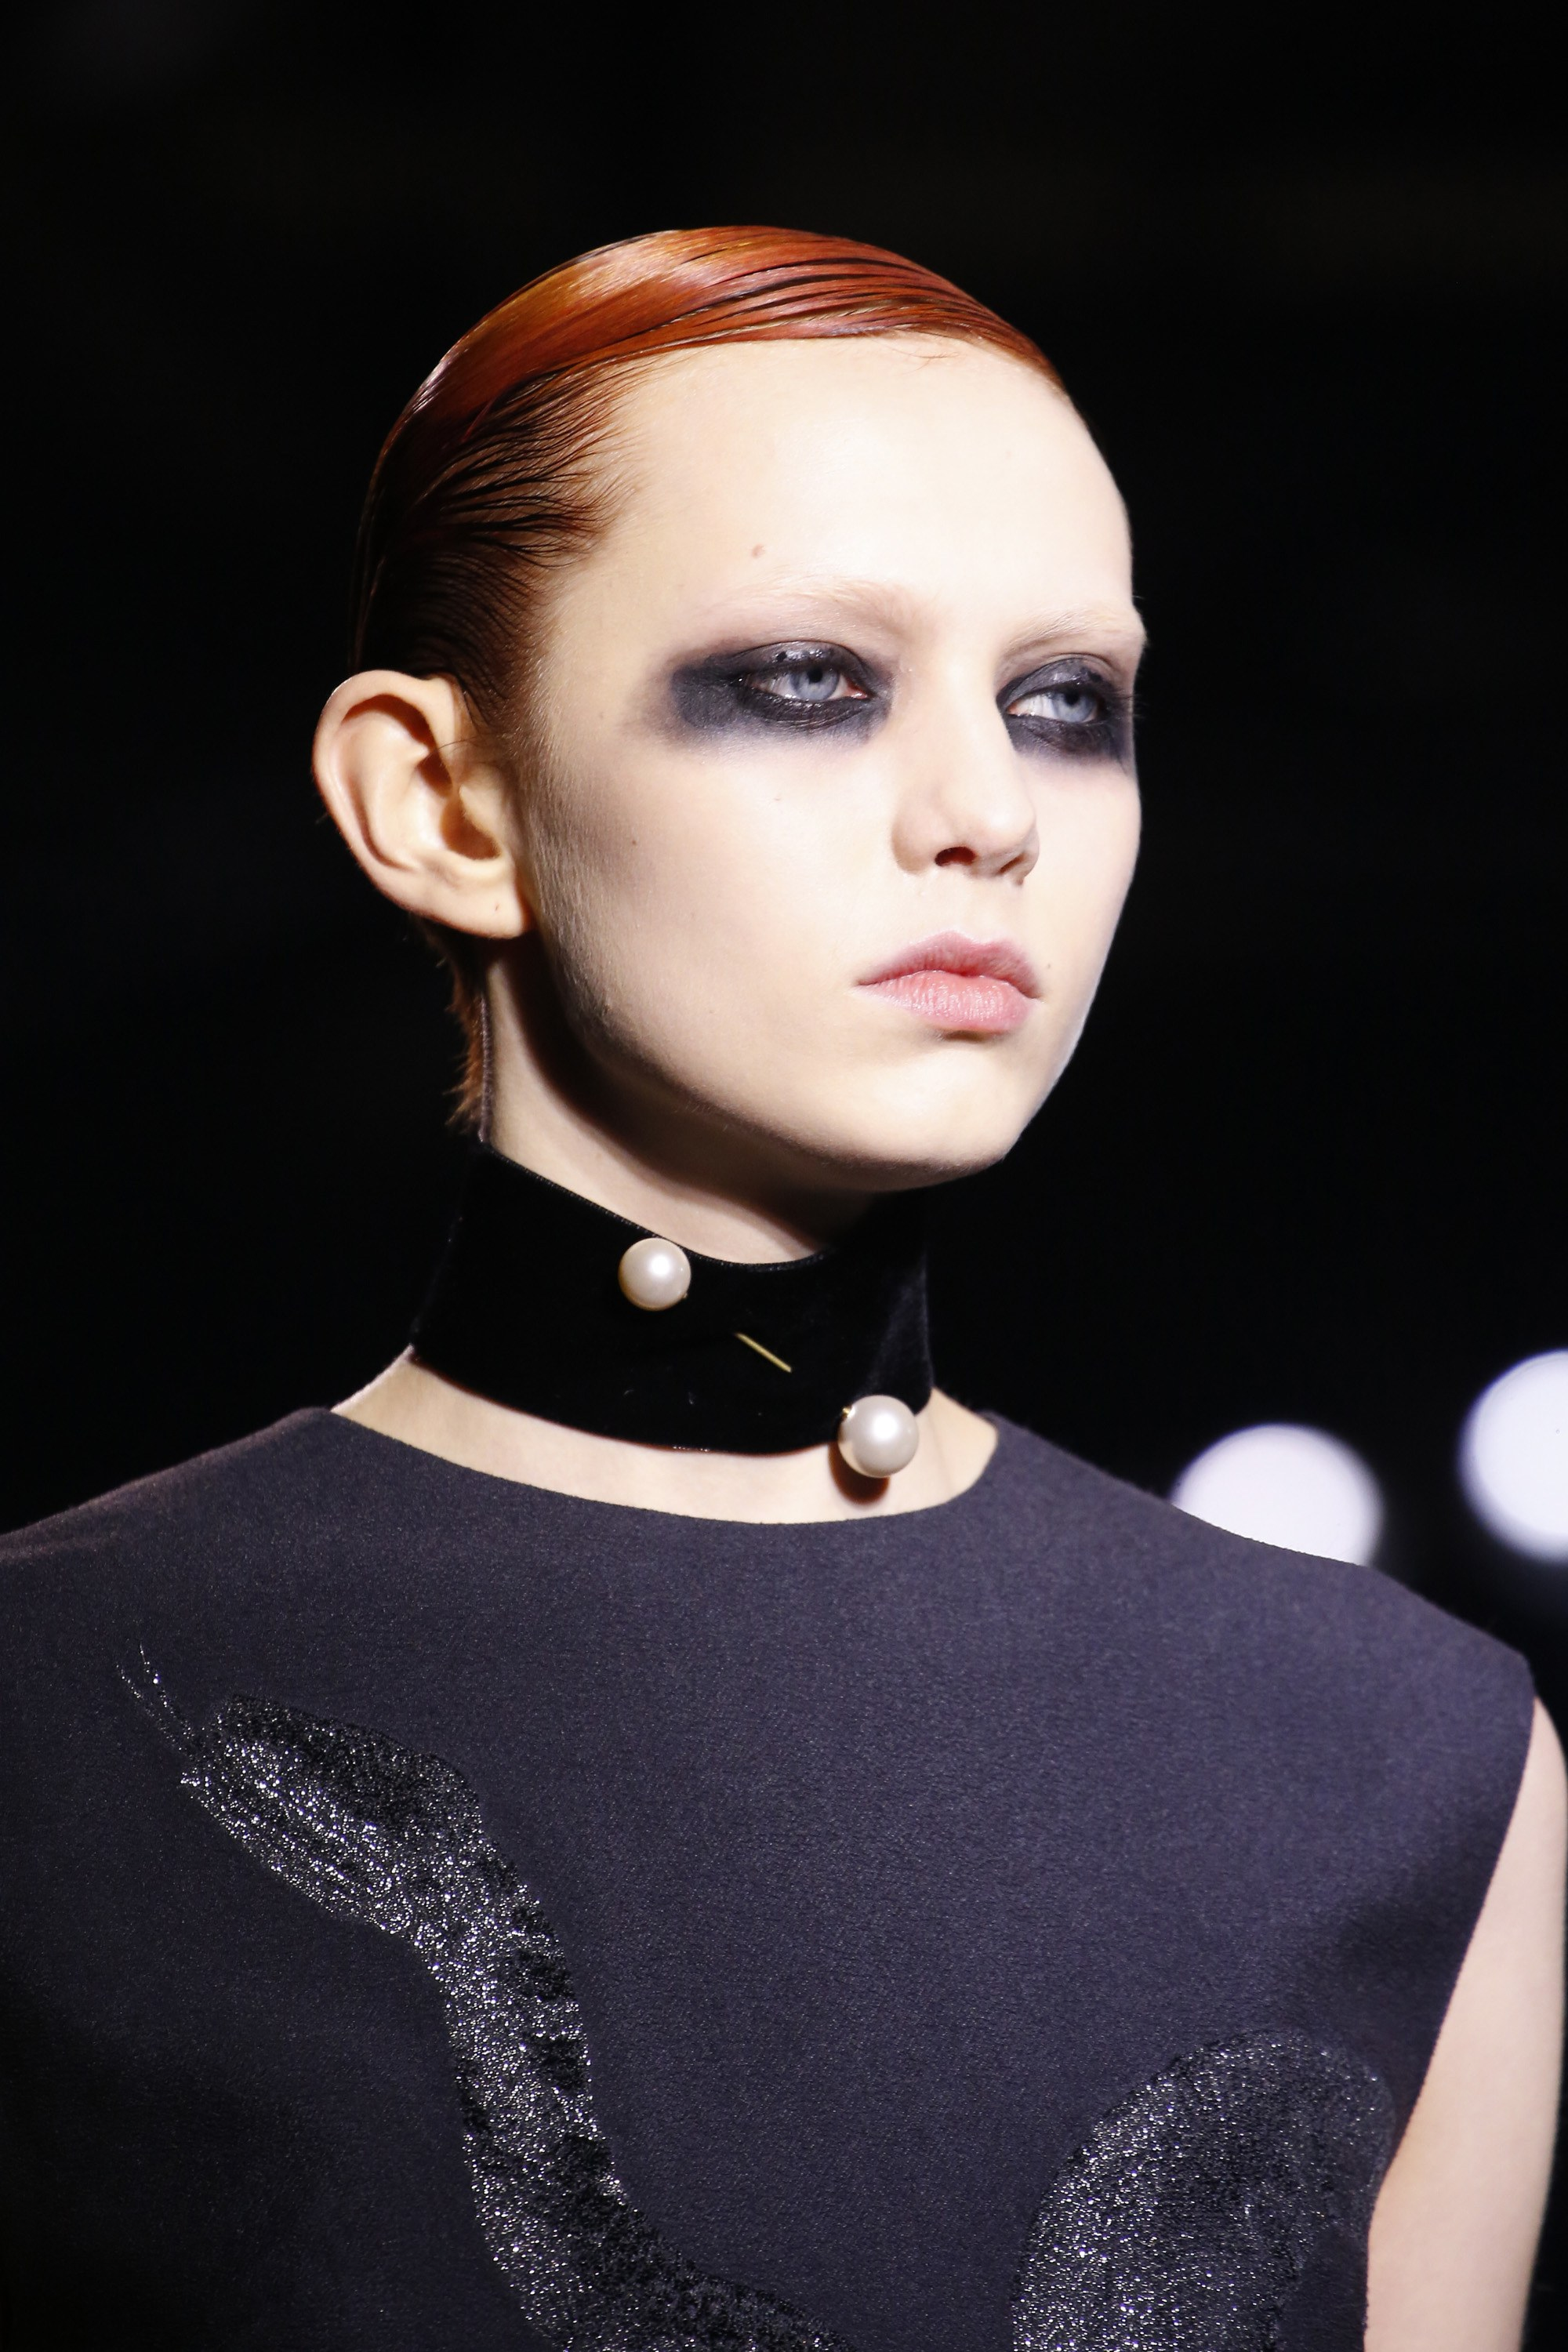 Pinned choker from Dries Van Noten's Fall 2016-17 collection. Photo source:  Vogue  Runway.